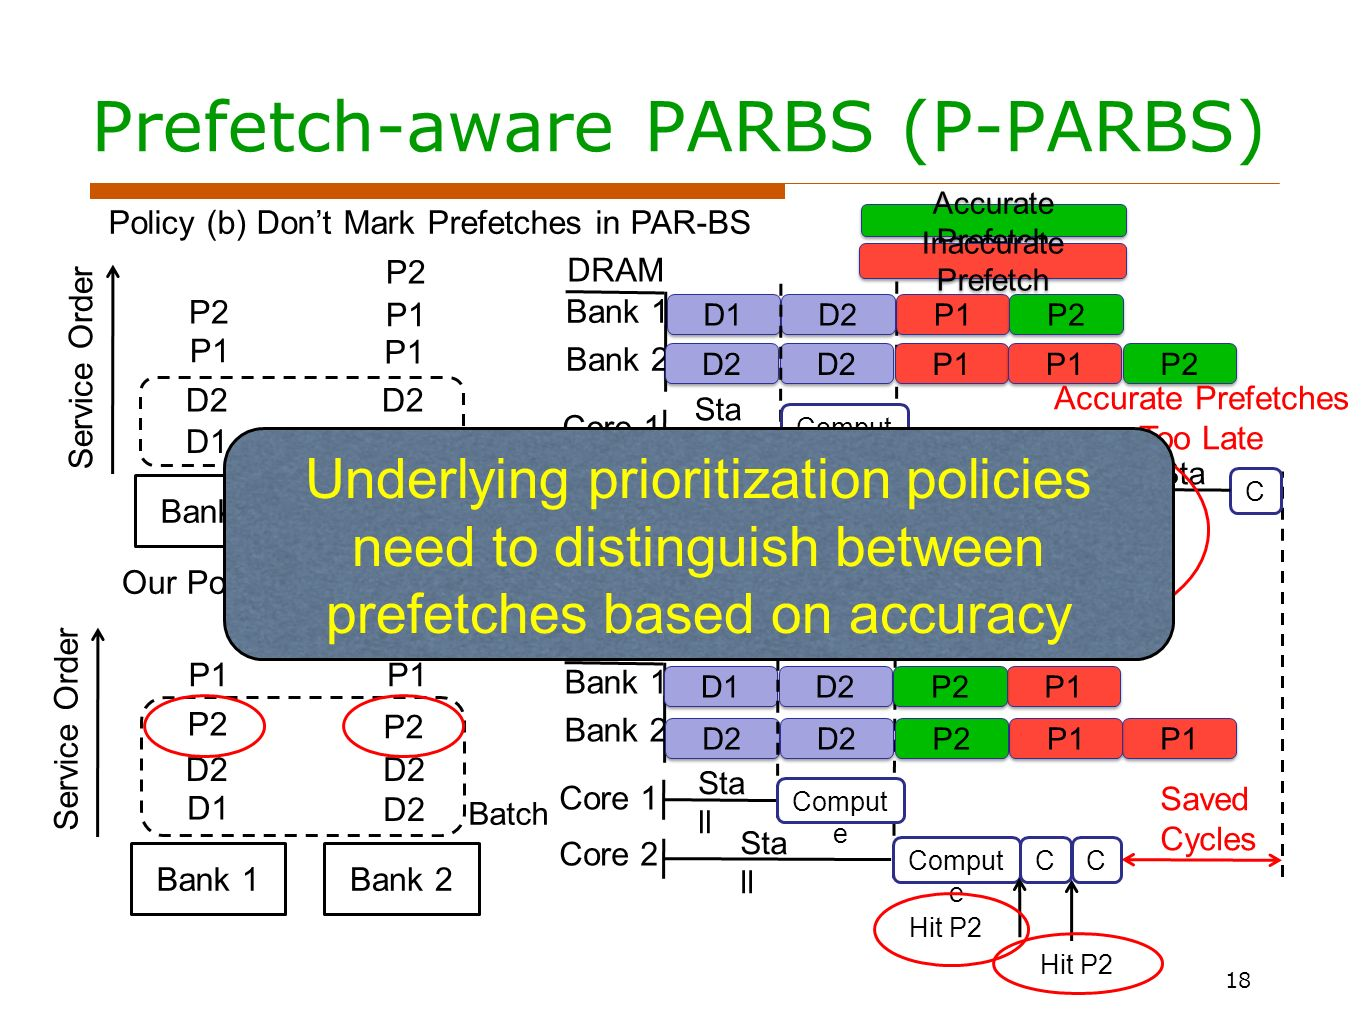 Batch Prefetch-aware PARBS (P-PARBS) 18 Bank 1Bank 2 Policy (b) Dont Mark Prefetches in PAR-BS P1 D1 D2 P2 P1 D2 P2 Service Order Bank 1 Bank 2 Core 1 Core 2 P1 D1 D2 P2 P1 D2 P2 Comput e Miss D2 Saved Cycles Sta ll C C Bank 1Bank 2 Our Policy: Mark Accurate Prefetches P1 D1 D2 P2 P1 D2 P2 Service Order DRAM Bank 1 Bank 2 Core 1 Core 2 P1 D1 D2 P2 P1 D2 P2 Comput e Hit P2 Accurate Prefetch Inaccurate Prefetch Sta ll CC Batch Accurate Prefetches Too Late Underlying prioritization policies need to distinguish between prefetches based on accuracy